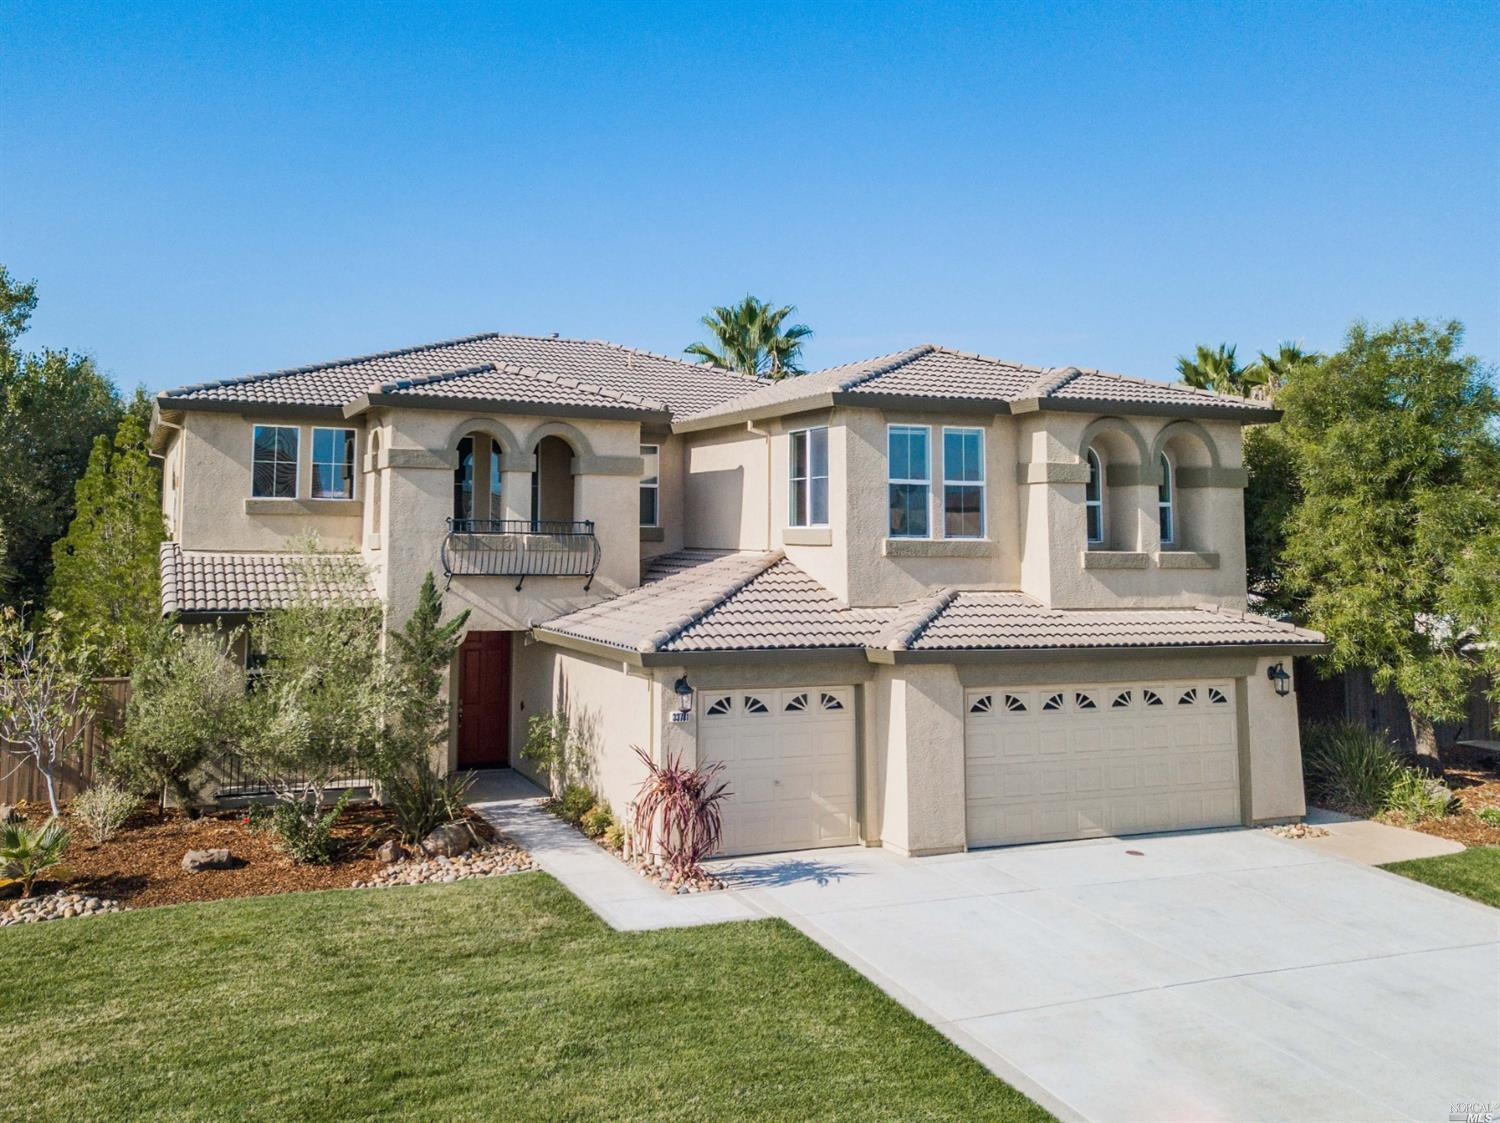 Photo of 33781 Pintail Street, Woodland, CA 95688